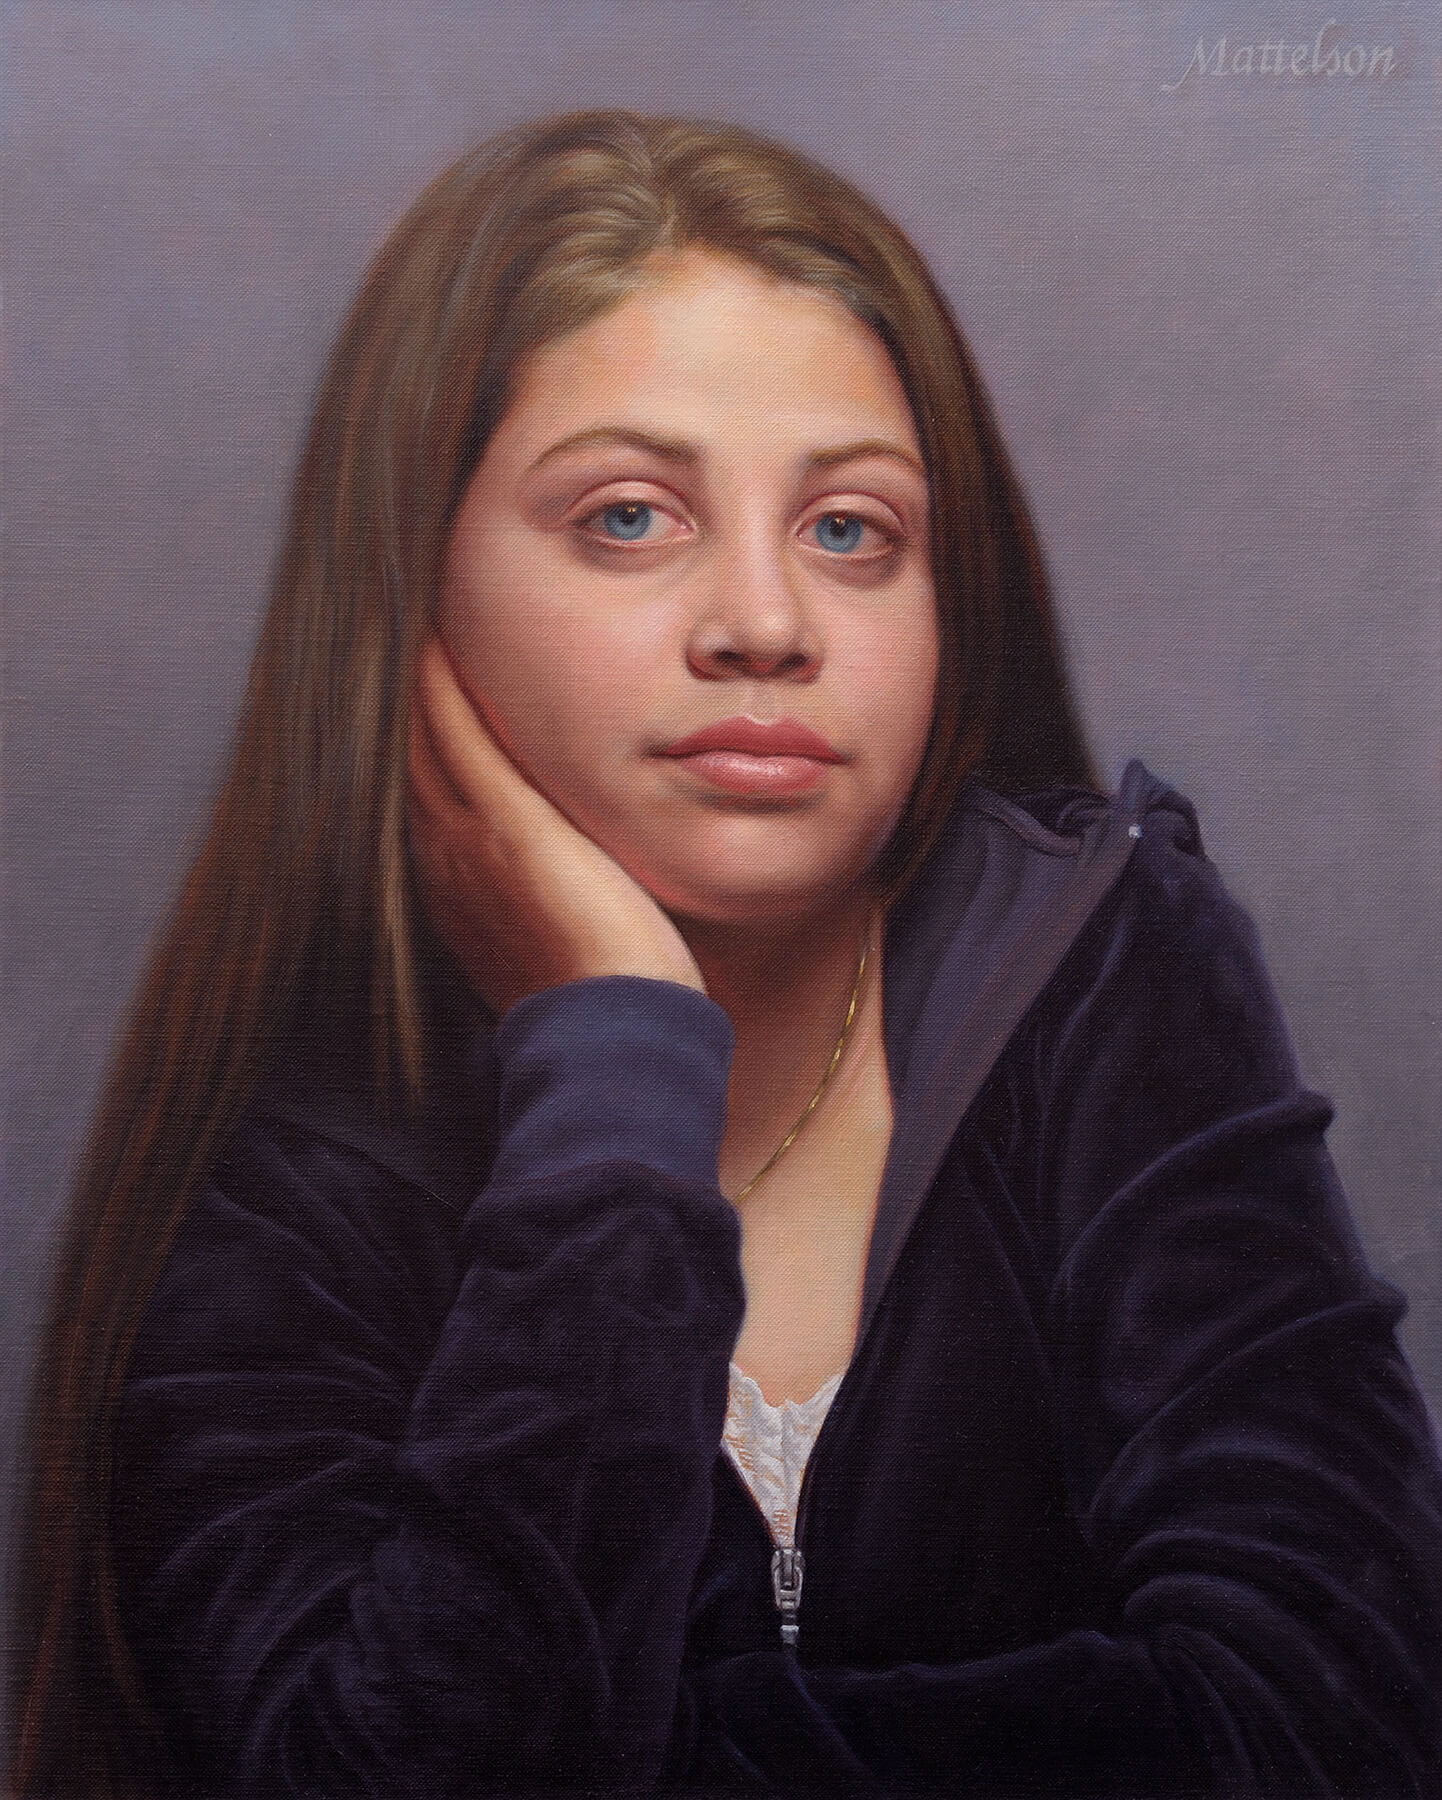 Commissioned teen oil portrait by Marvin Mattelson